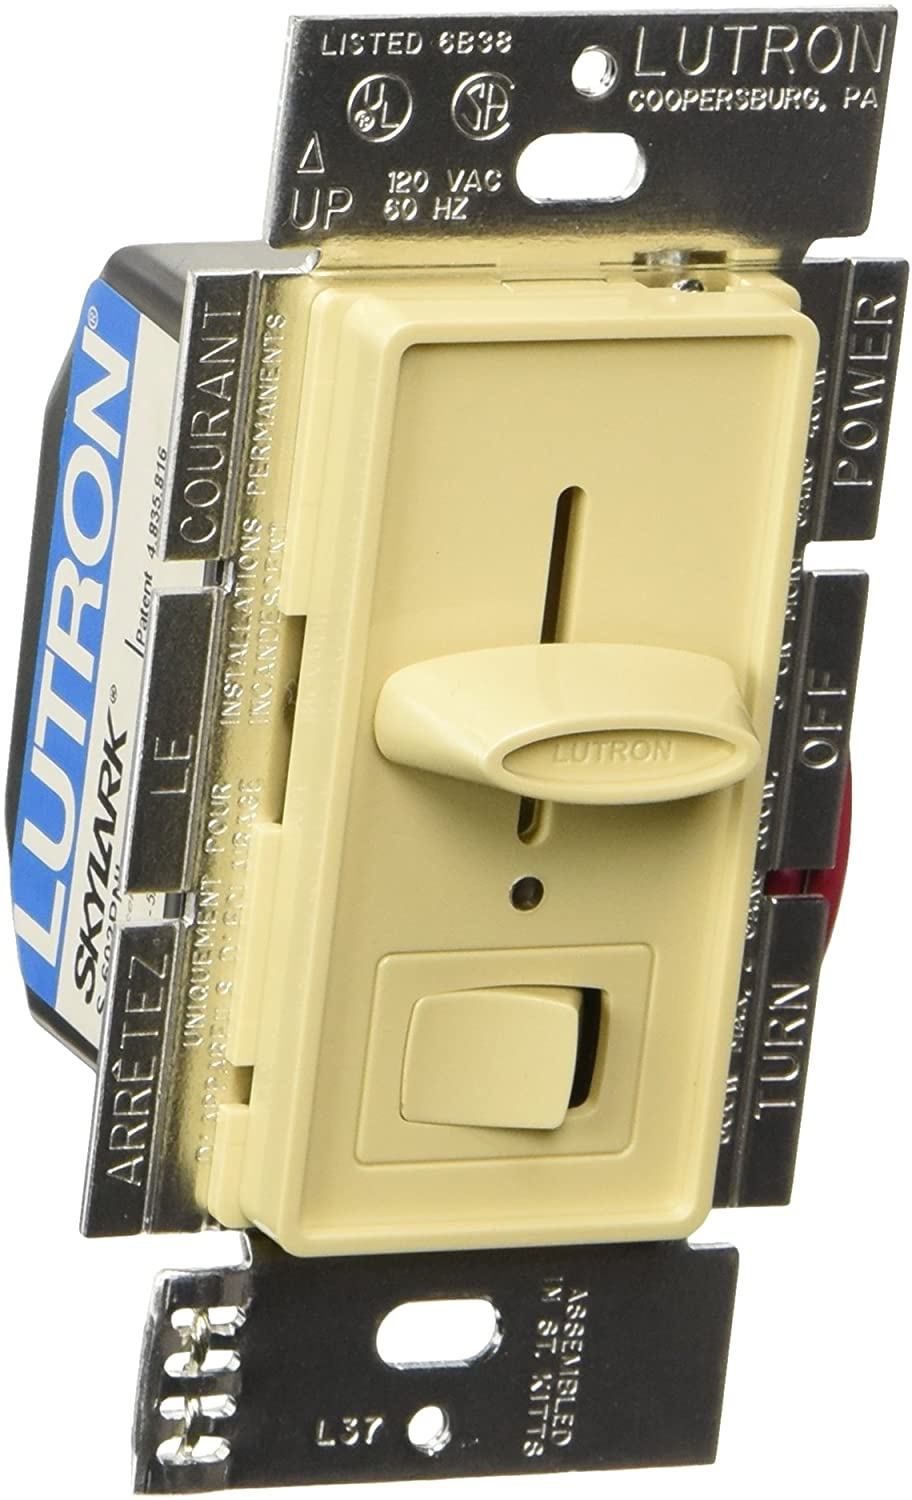 Lutron S-603PNLH-IV LIGHTING DIMMER, Ivory